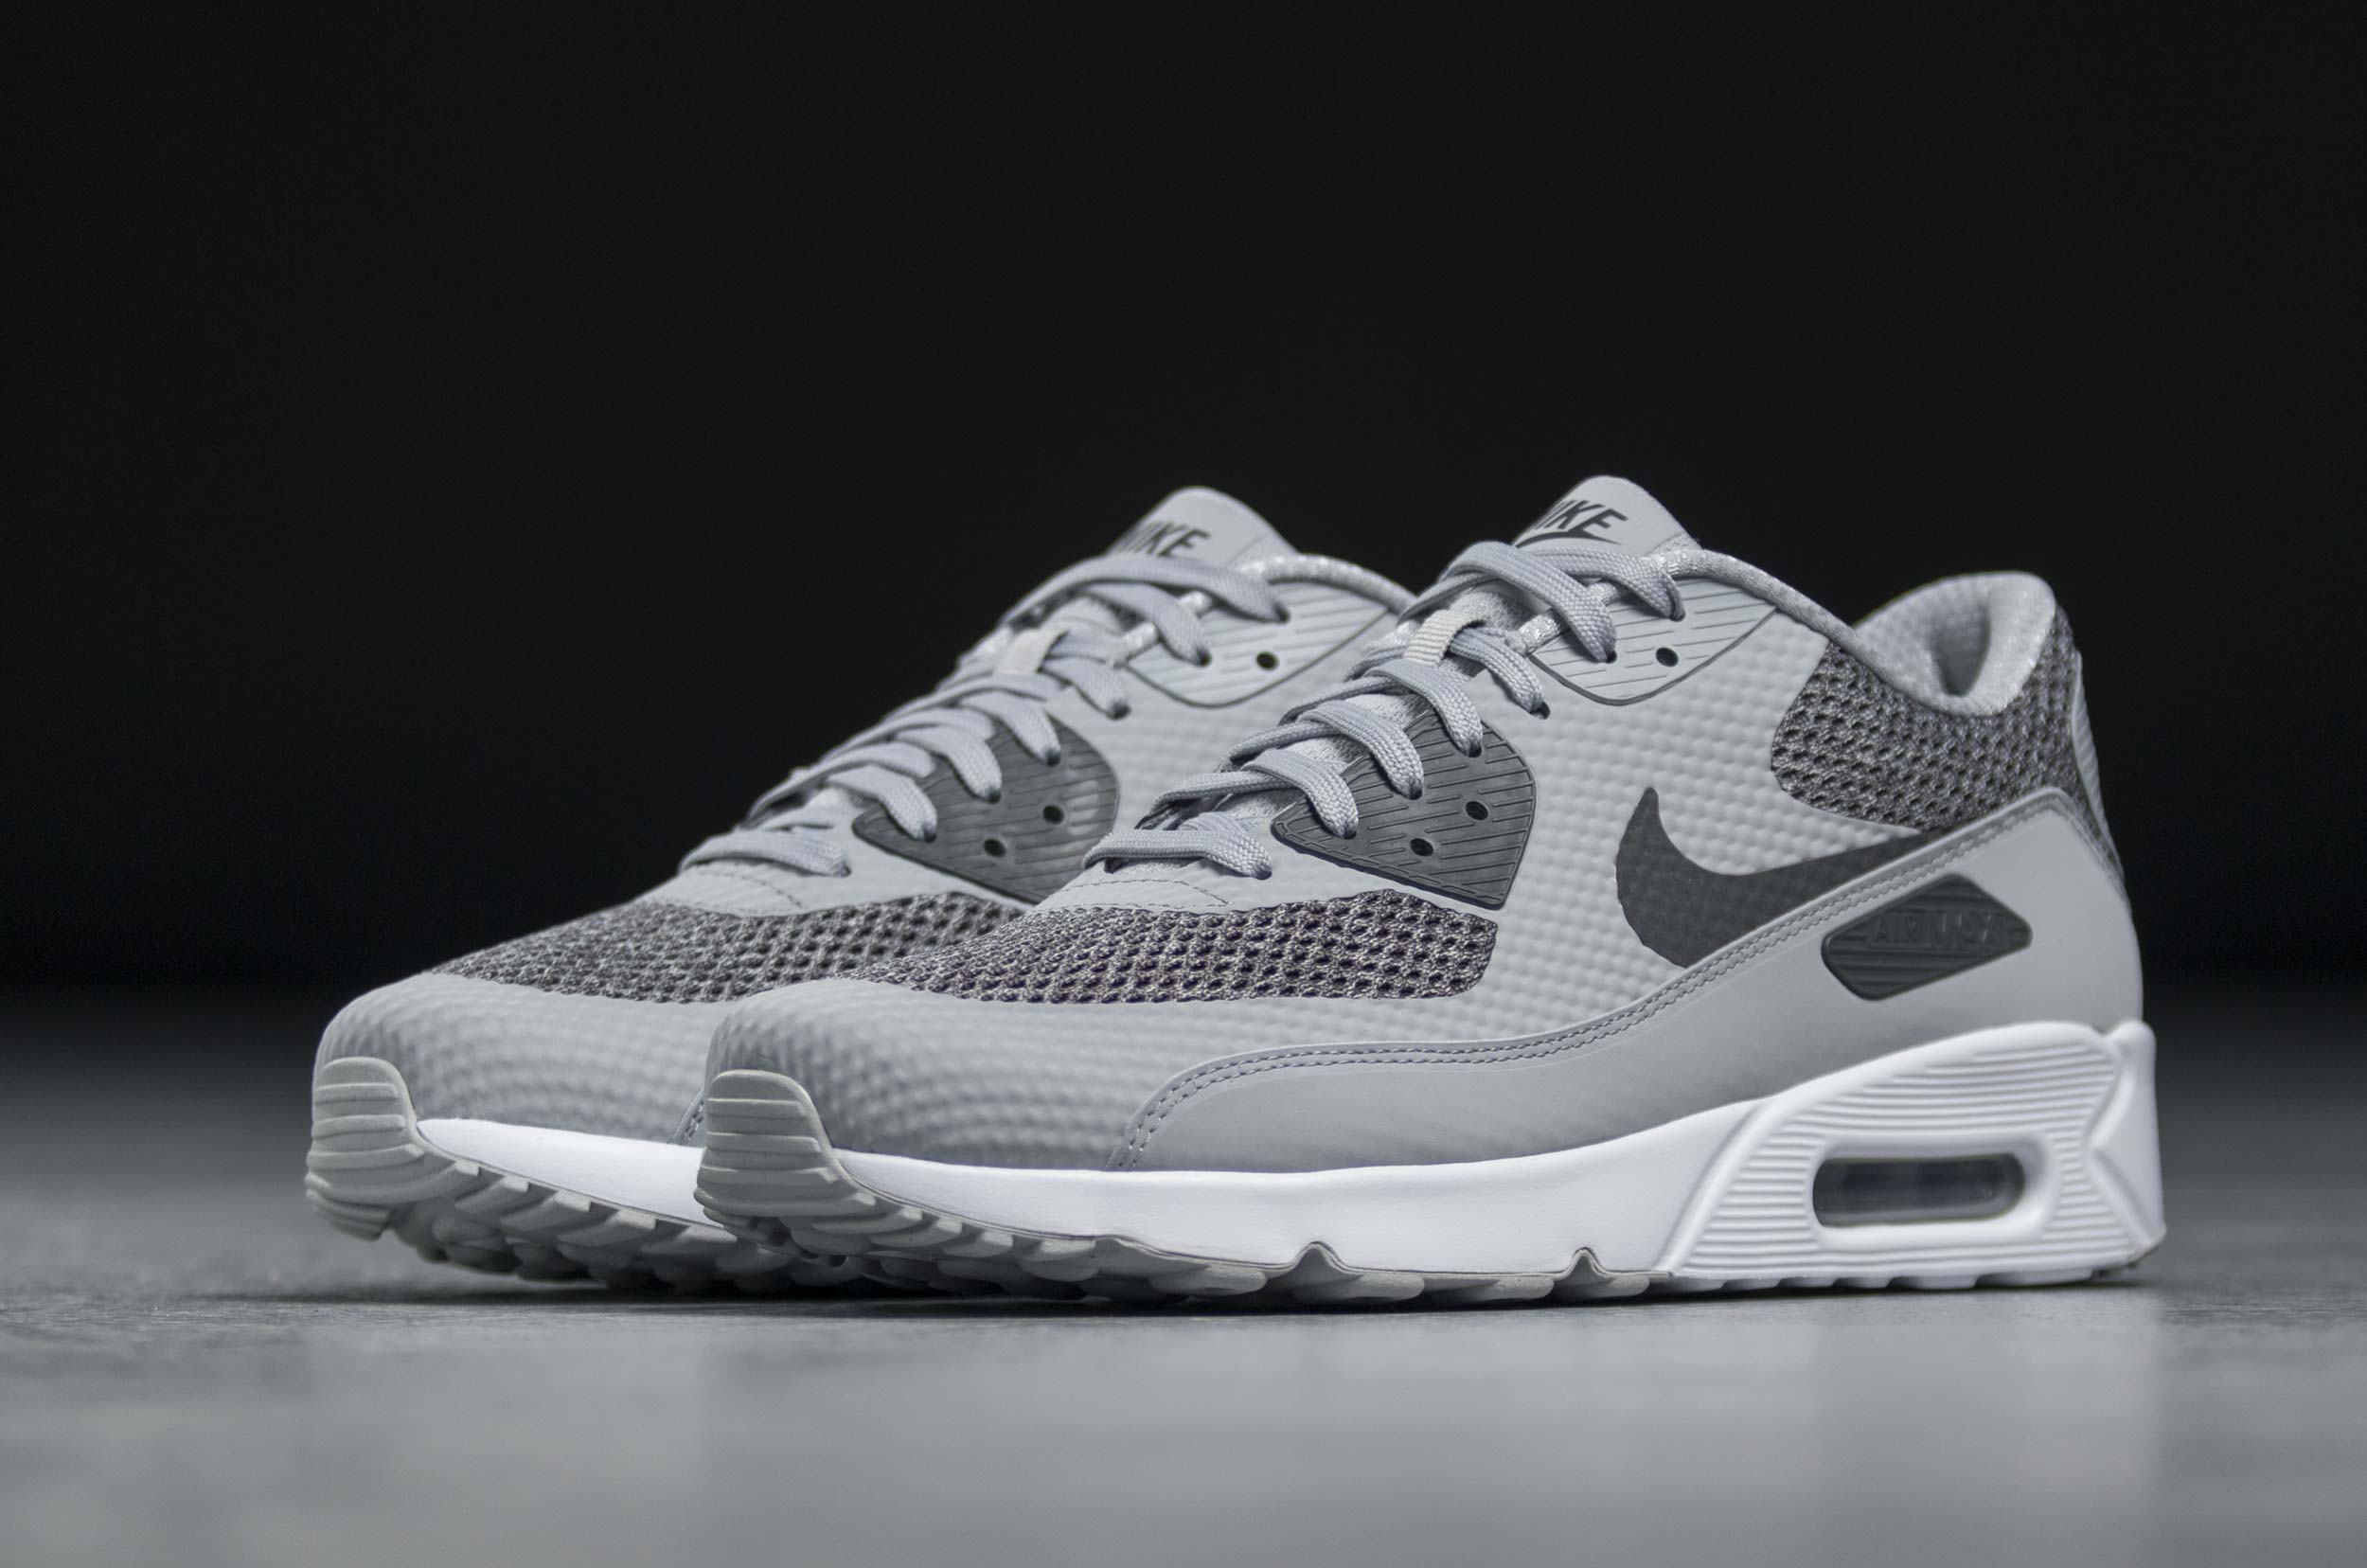 new product f6866 8d6d7 ... NIKE AIR MAX 90 ULTRA 2.0 ESSENTIAL 875695-020 Γκρί ...